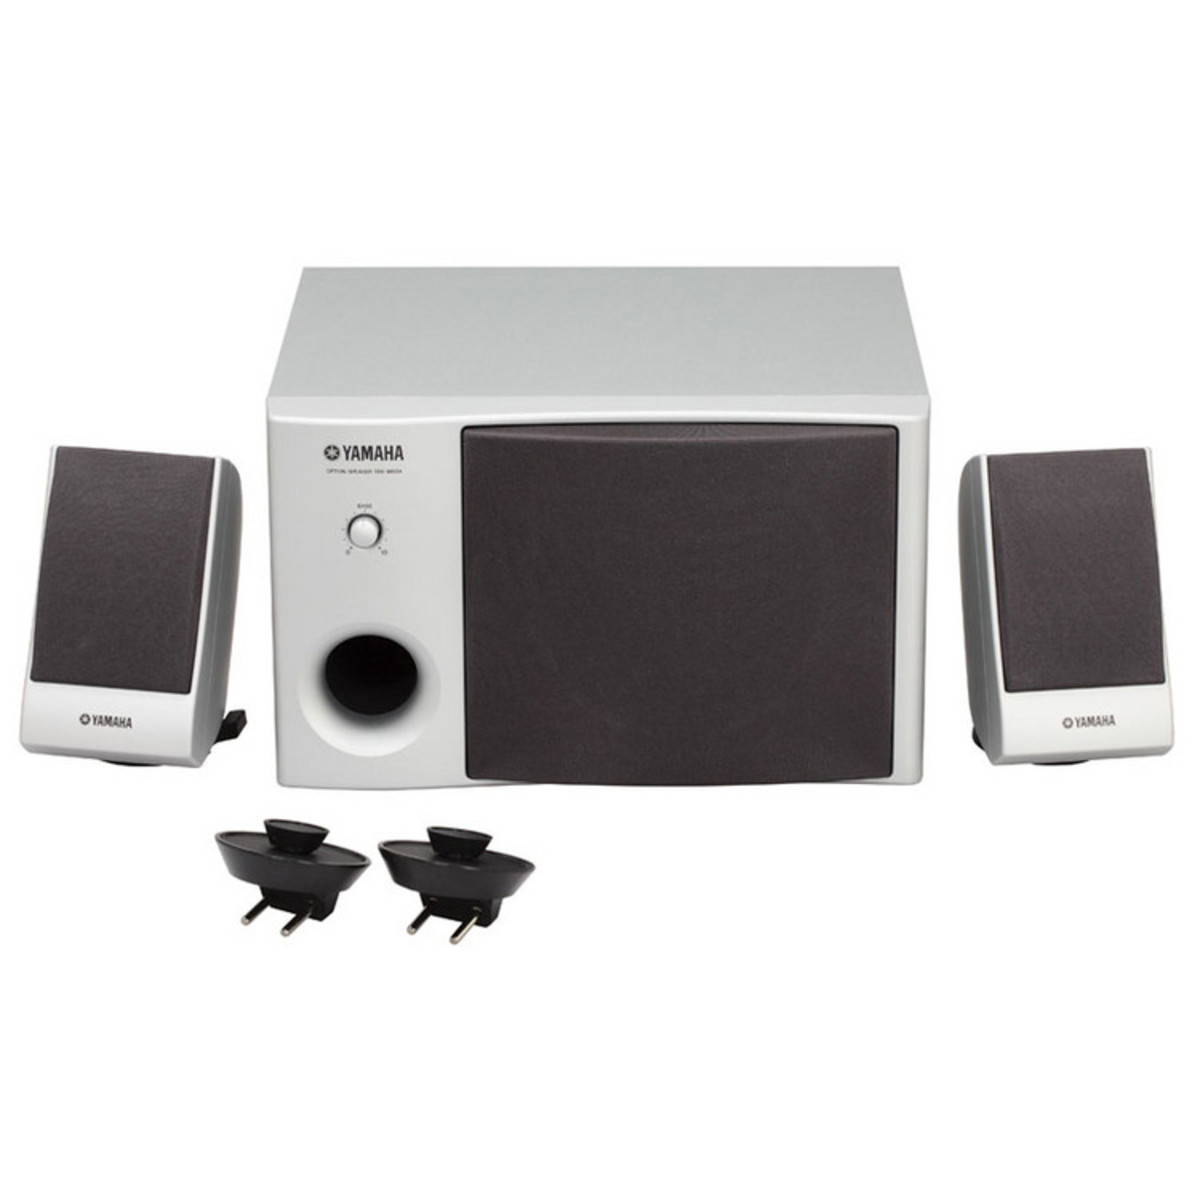 Yamaha trs ms04 speakers for tyros 4 nearly new at for Yamaha speakers price